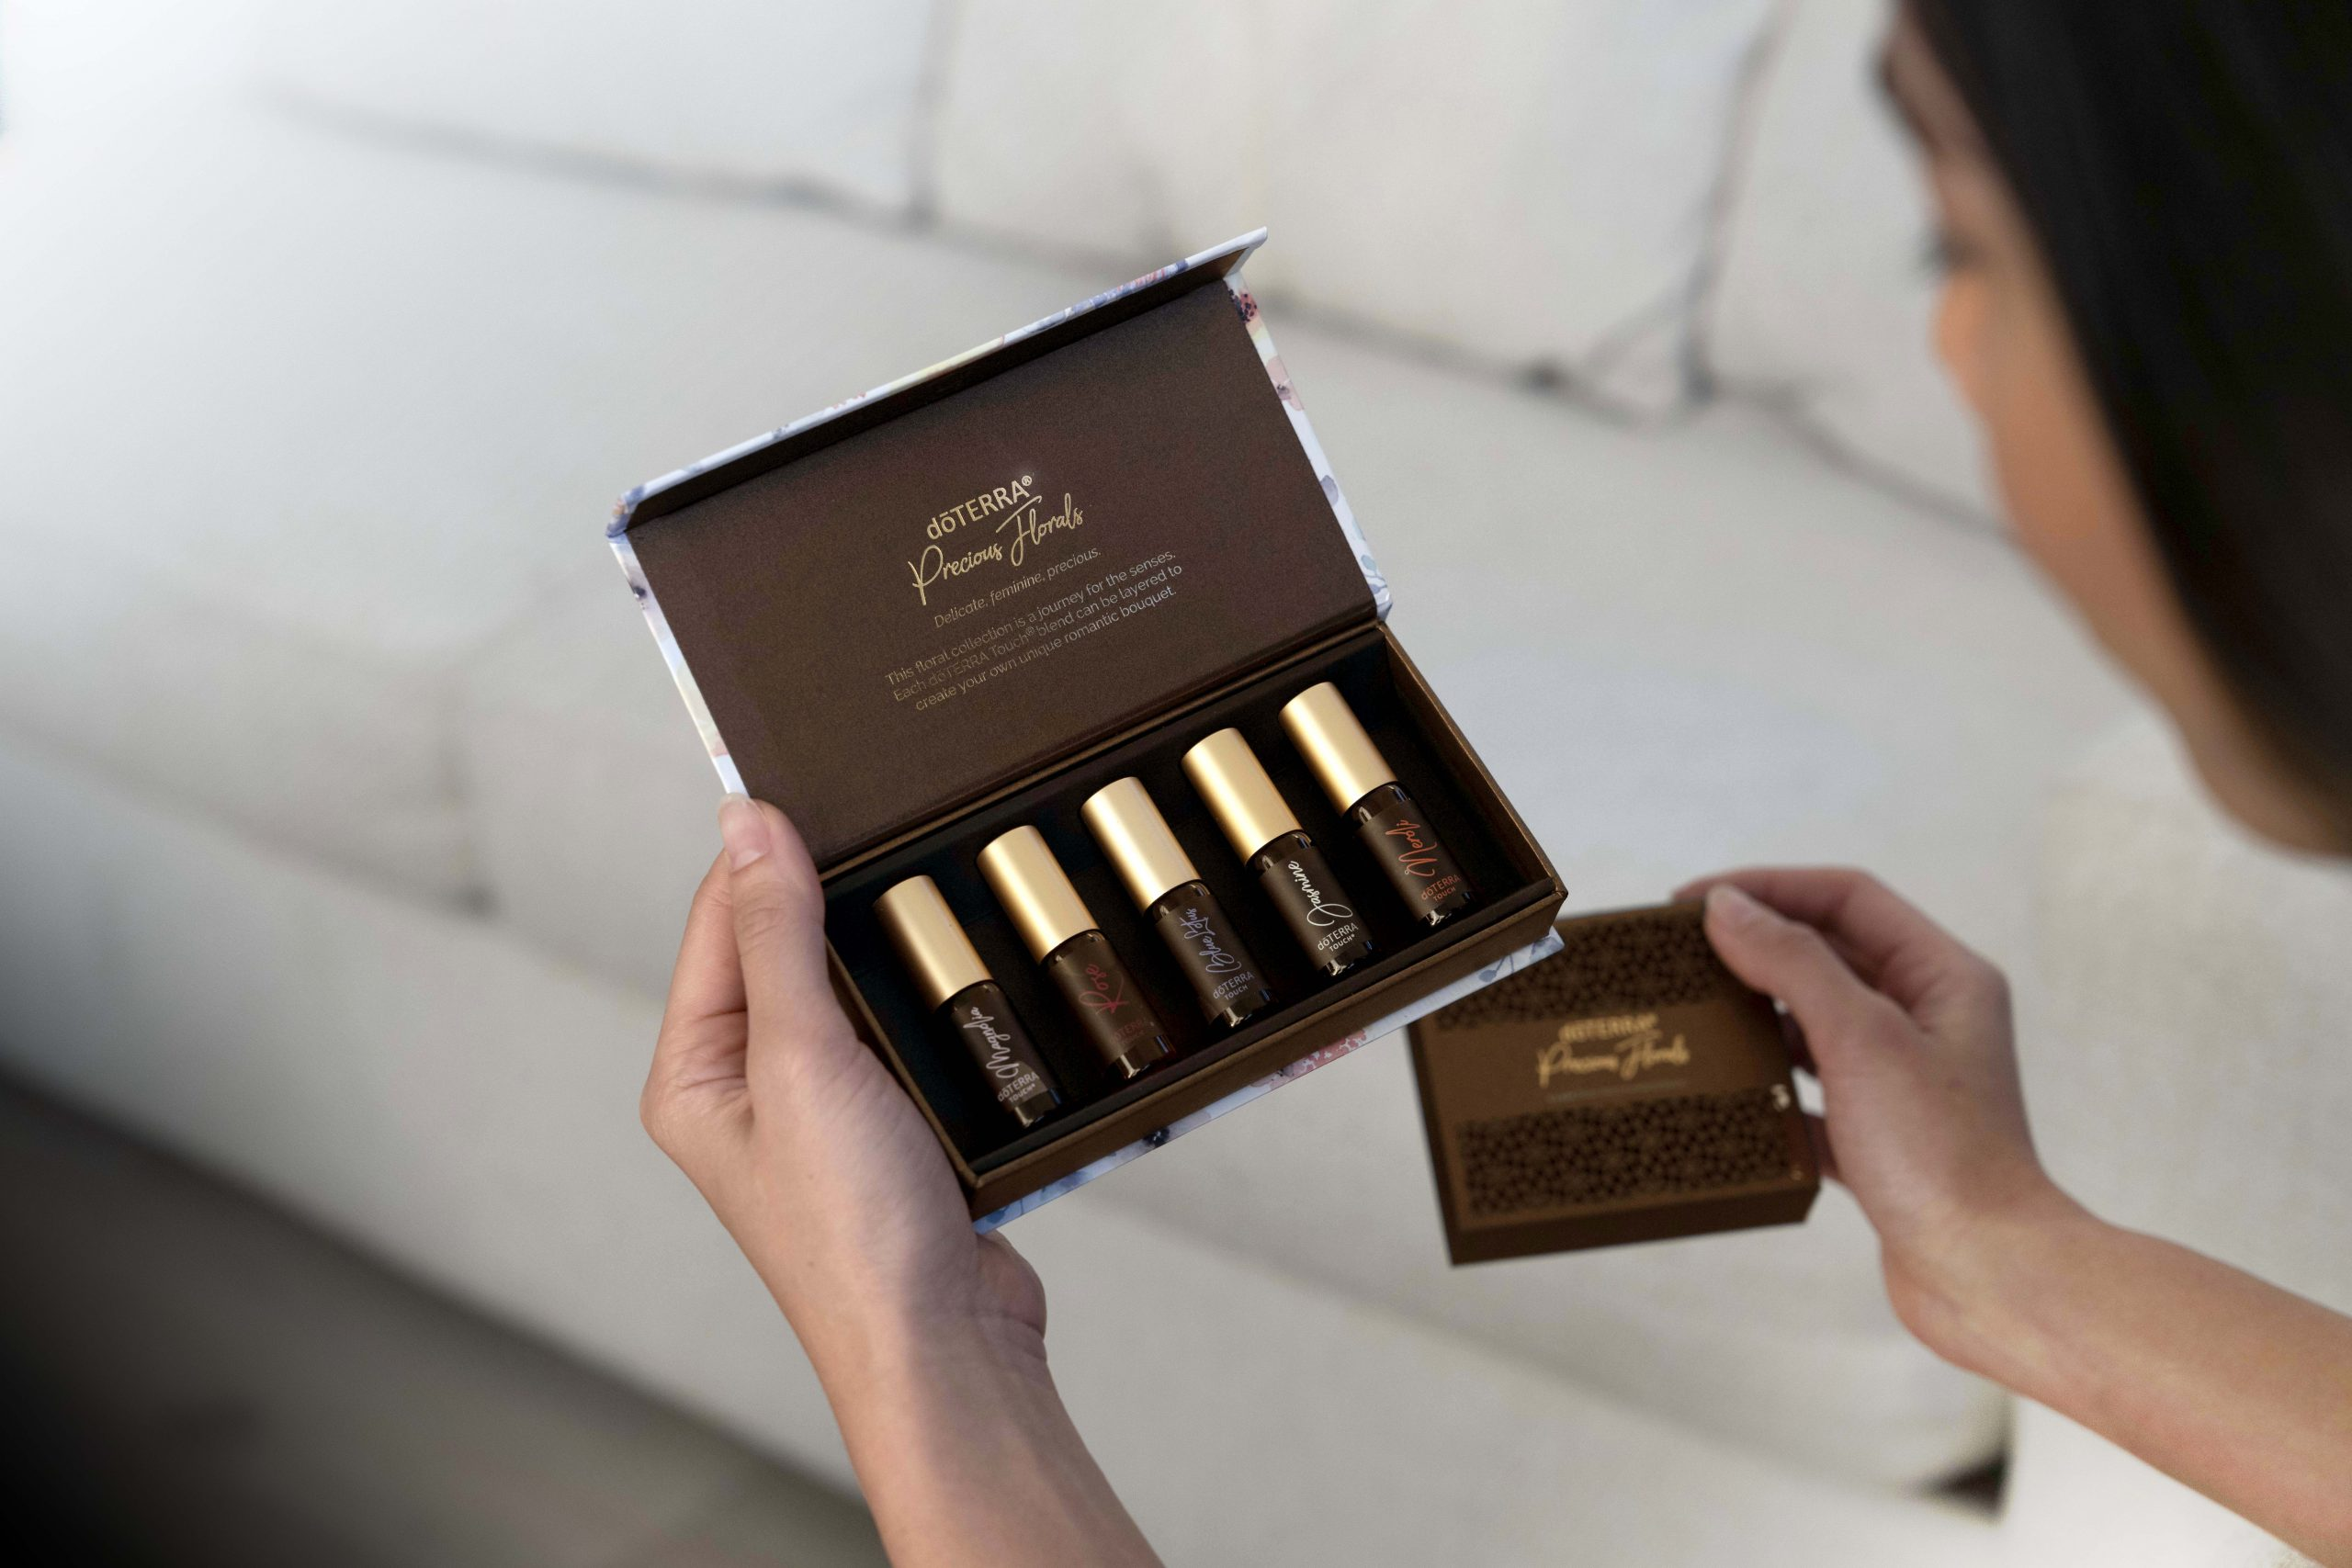 doTERRA Mother's Day Kit 2020 - Includes five 4 mL roll-on Touch versions of: Rose essential oil, Neroli essential oil, Jasmine essential oil, Magnolia essential oil, Blue Lotus essential oil (new!)